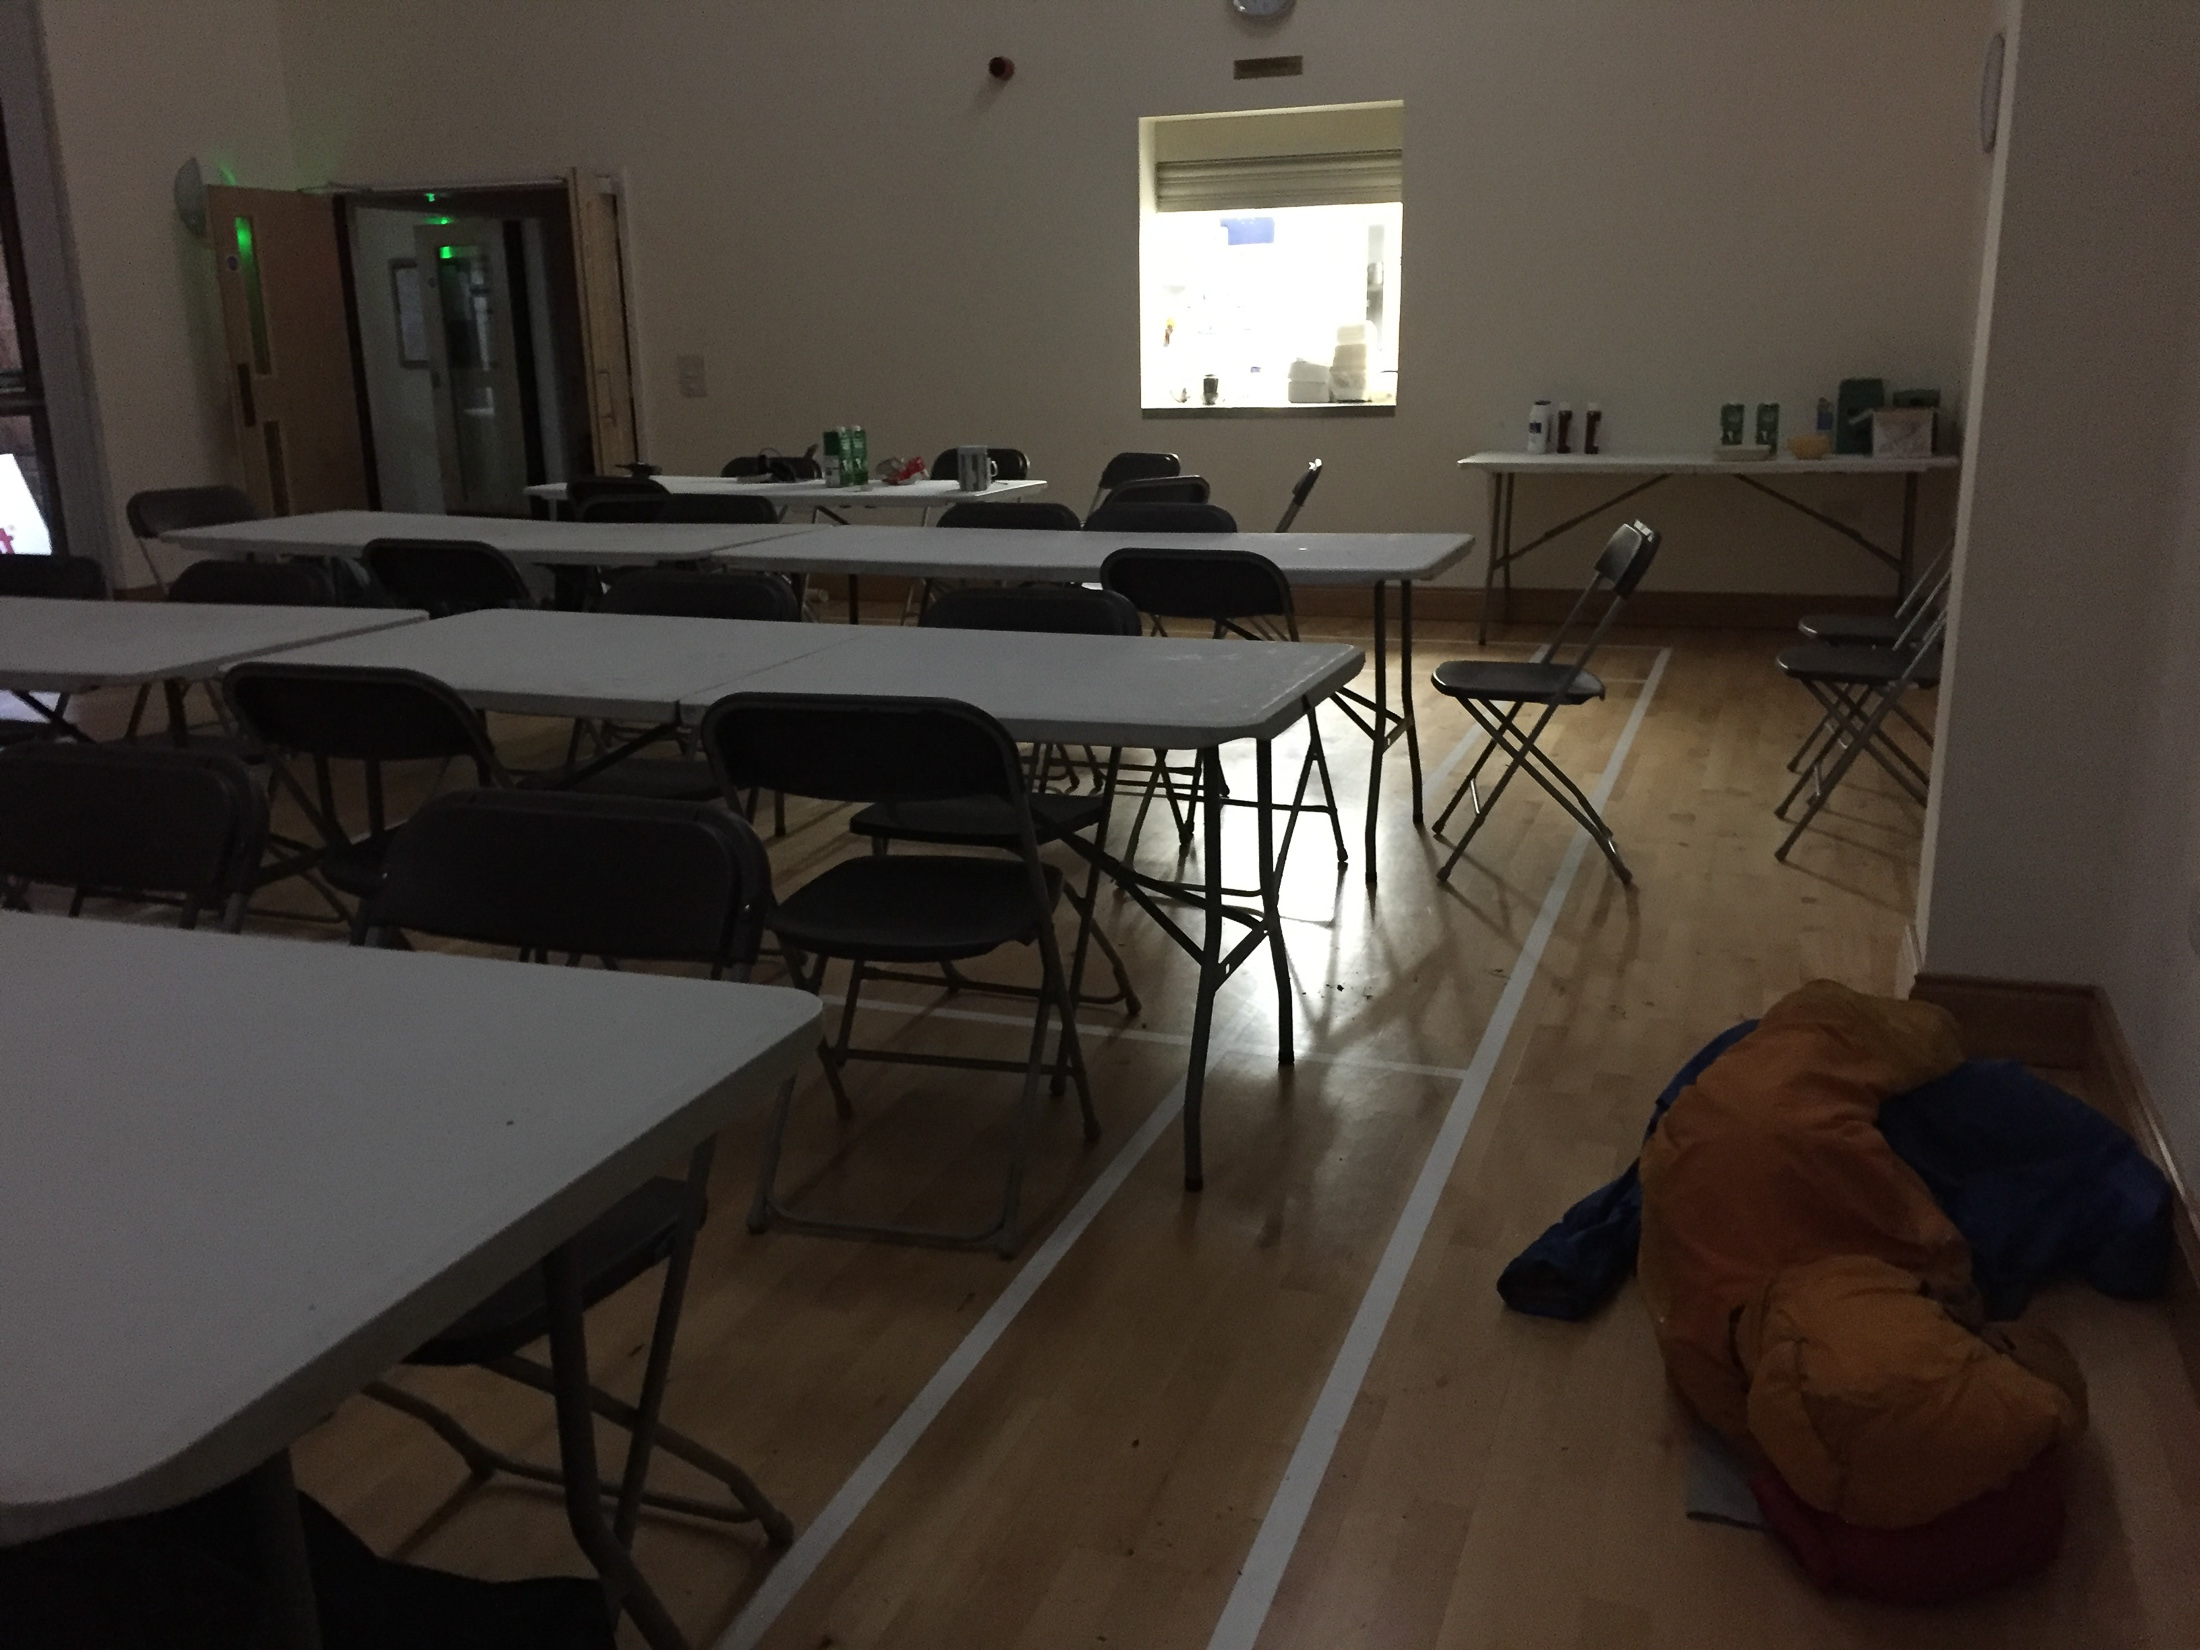 Back down nice and early. The yellow blob on the floor is John napping. © Haydn Williams 2017